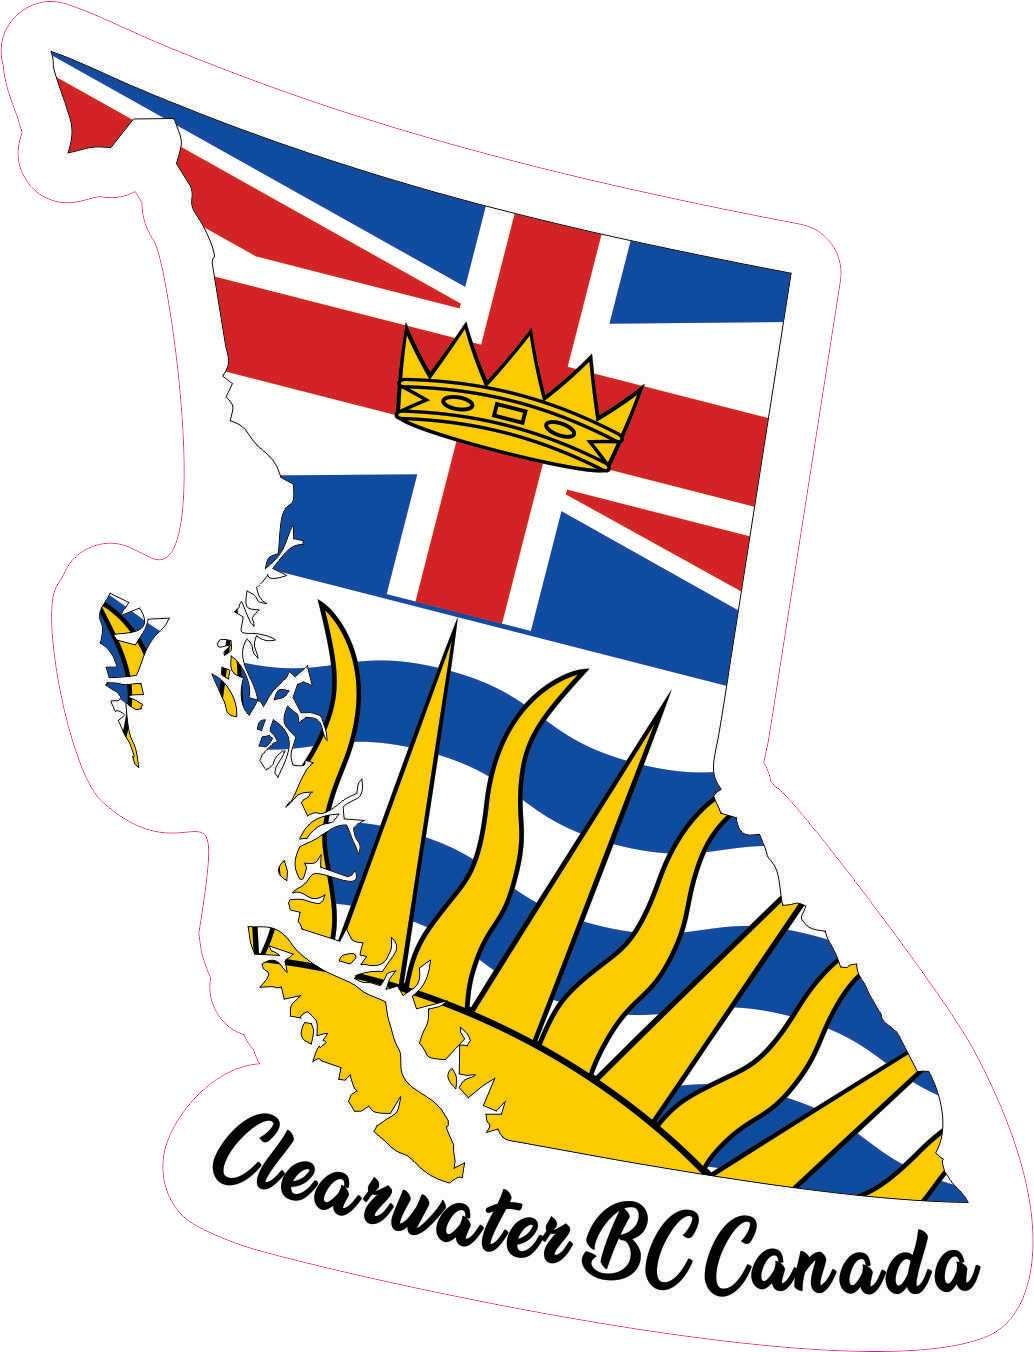 BC Province Clearwater